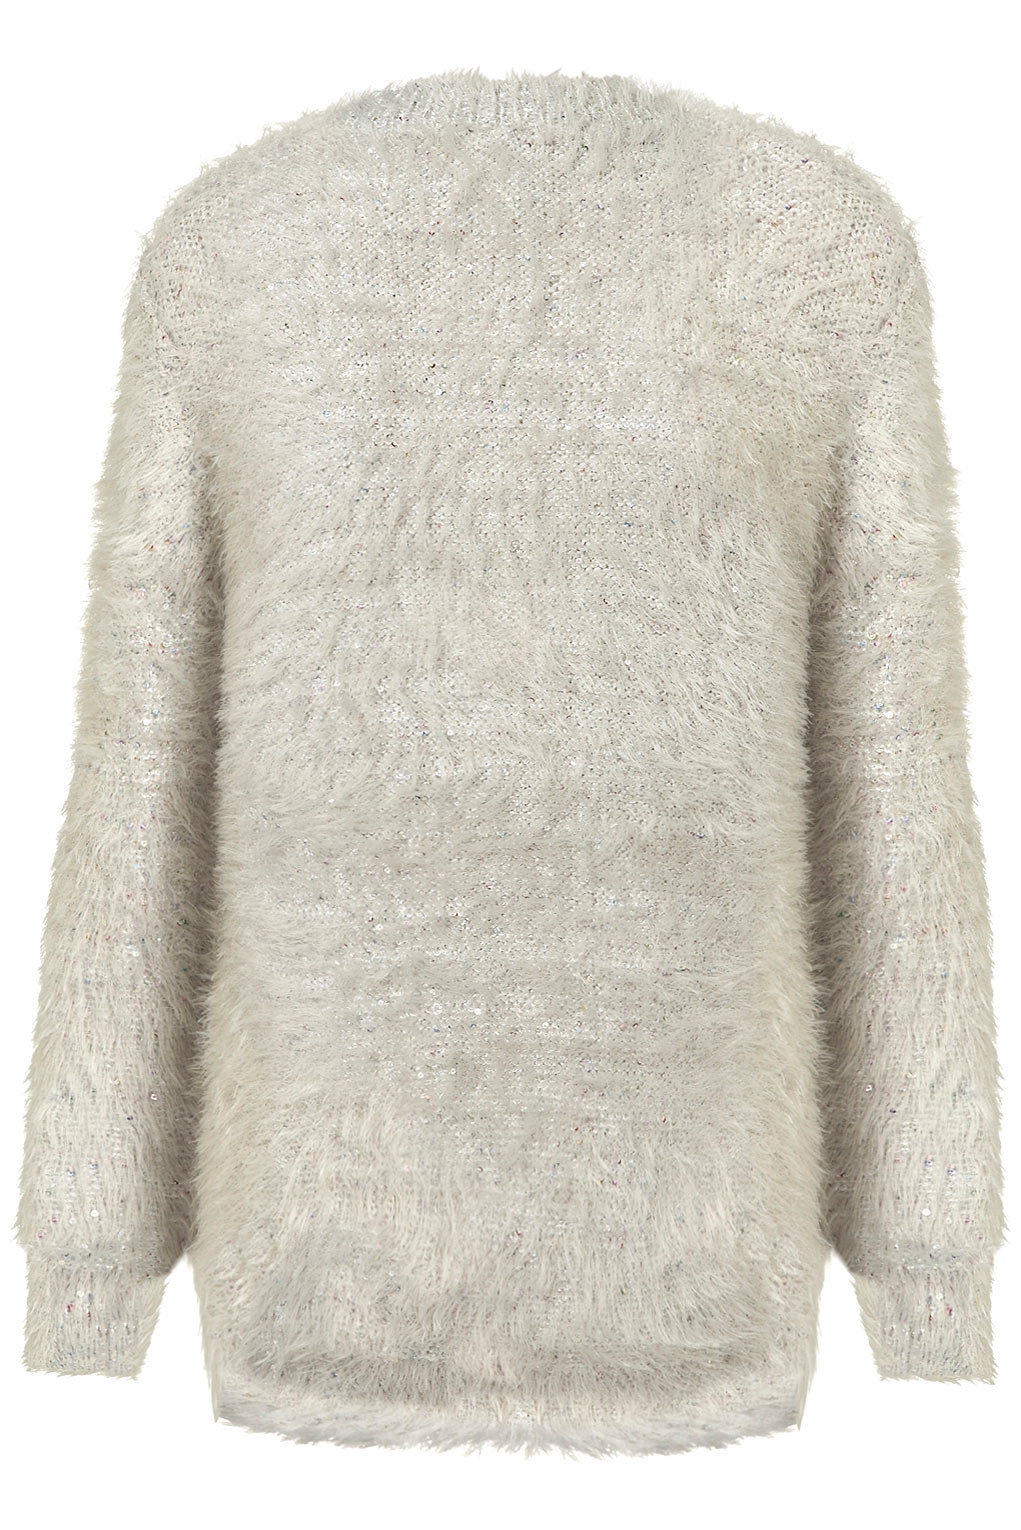 Topshop Knitted Fluffy Sequin Jumper in Gray   Lyst